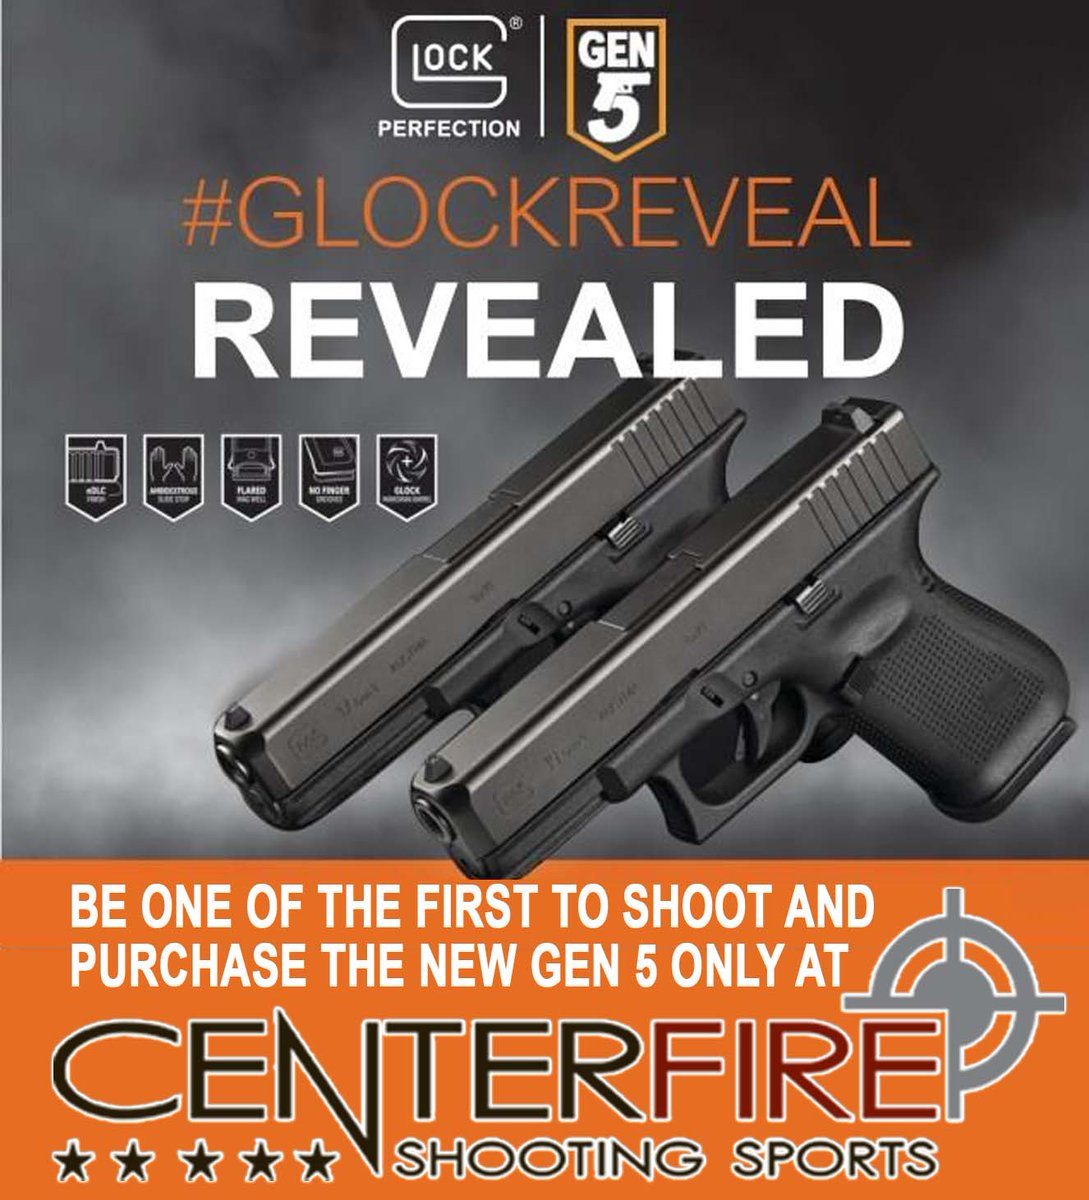 Centerfire Shooting On Twitter Glock Gen5 Has Arrived And We Have